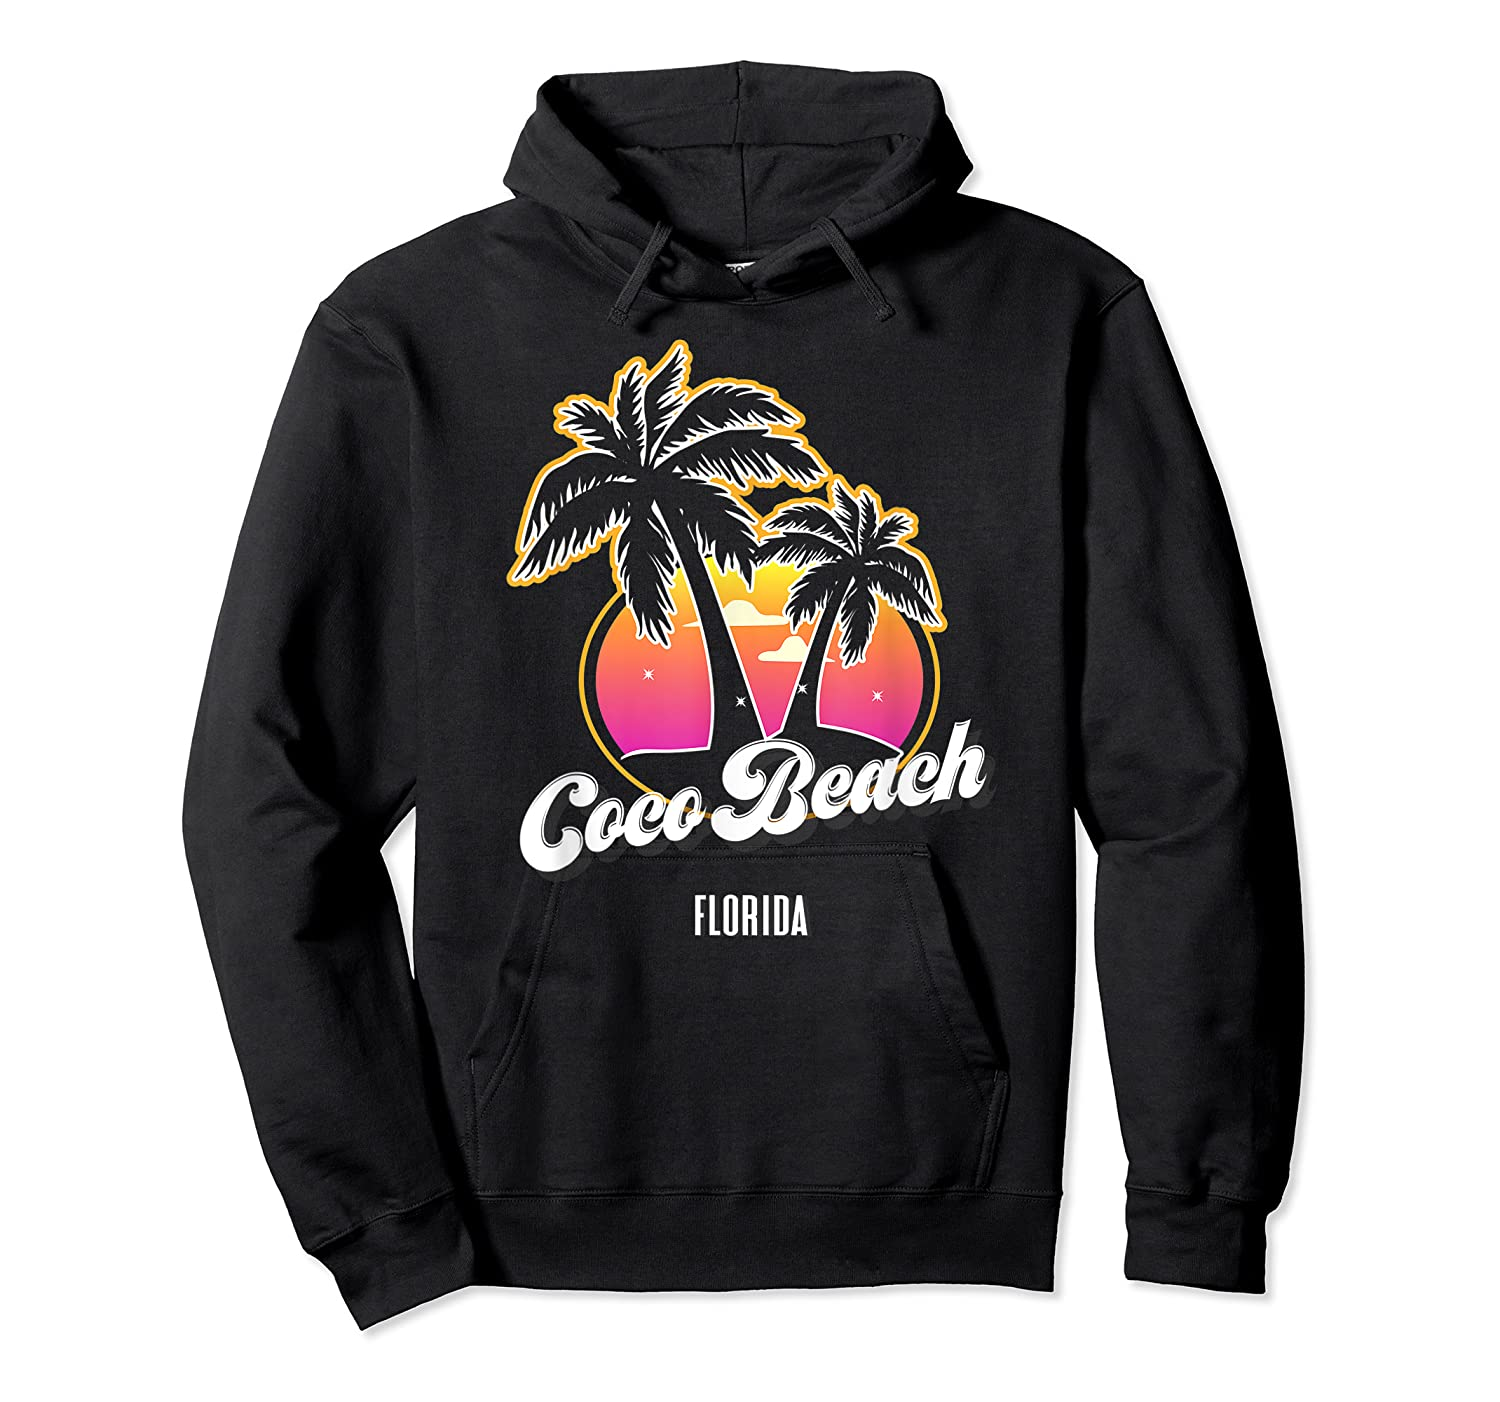 Coco Beach Florida City Native S Gift Shirts Unisex Pullover Hoodie